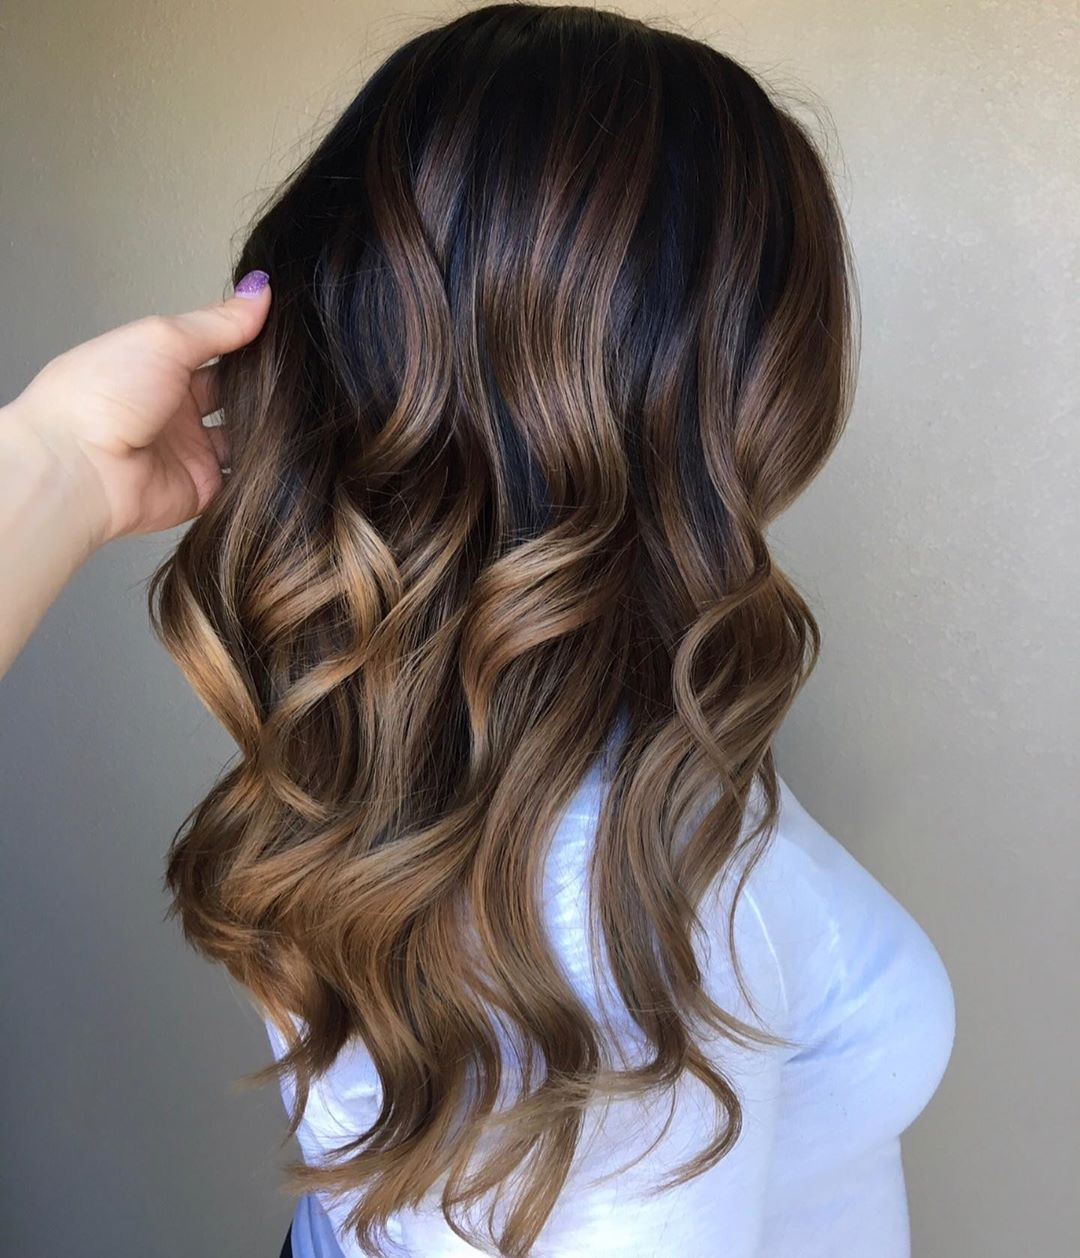 Mocha and Caramel Brown Balayage Hair